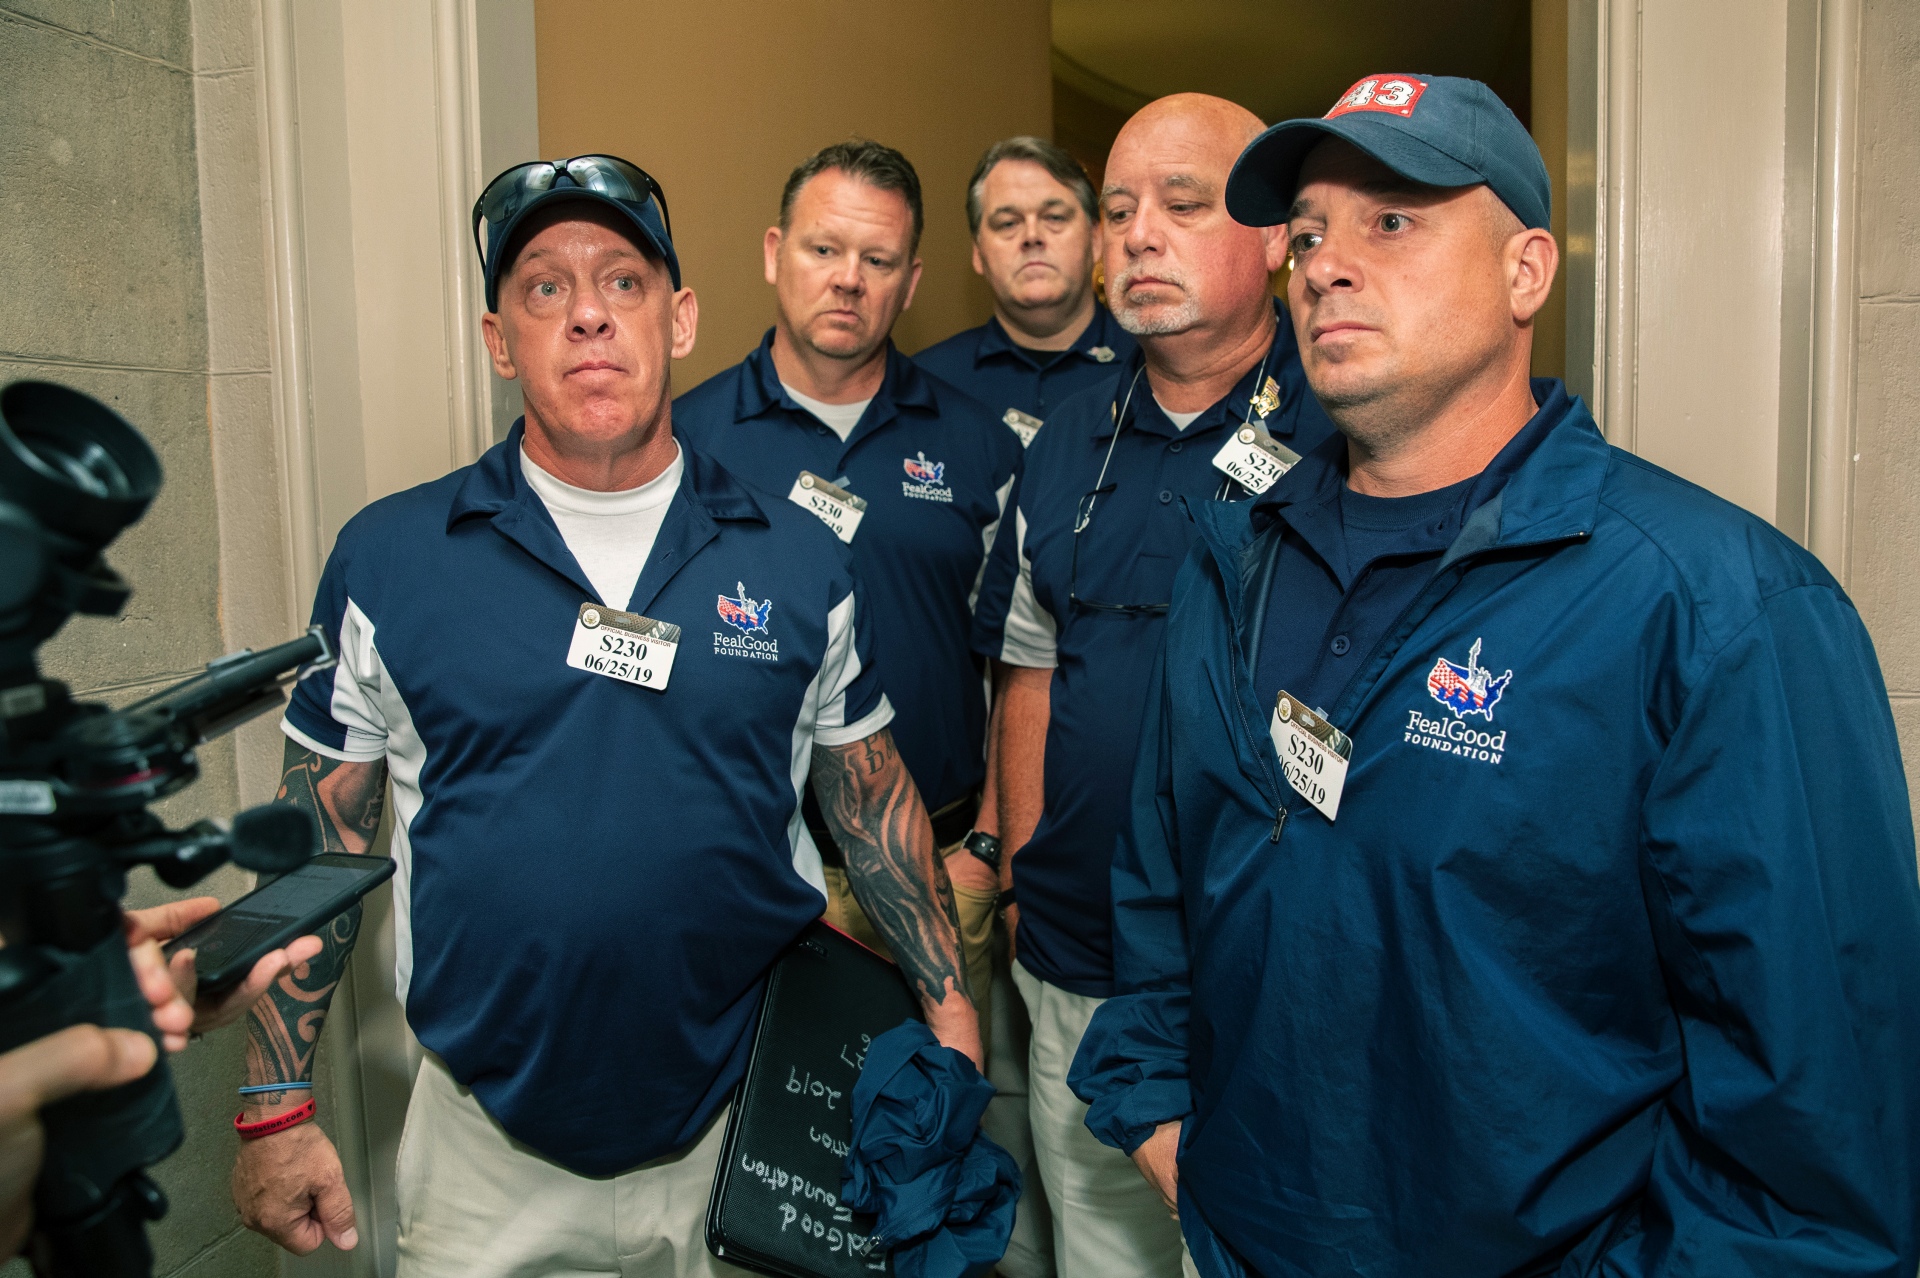 Westlake Legal Group ContentBroker_contentid-0181108f49c6459d93d3ca655b2ae99f Sept. 11 first responders call sit-down with McConnell 'one of the best meetings we've had' Vandana Rambaran fox-news/us/terror/september-11 fox-news/us fox-news/politics fox news fnc/politics fnc article 8cb54cc7-082b-5bcb-b9e8-5ff7228d9e89